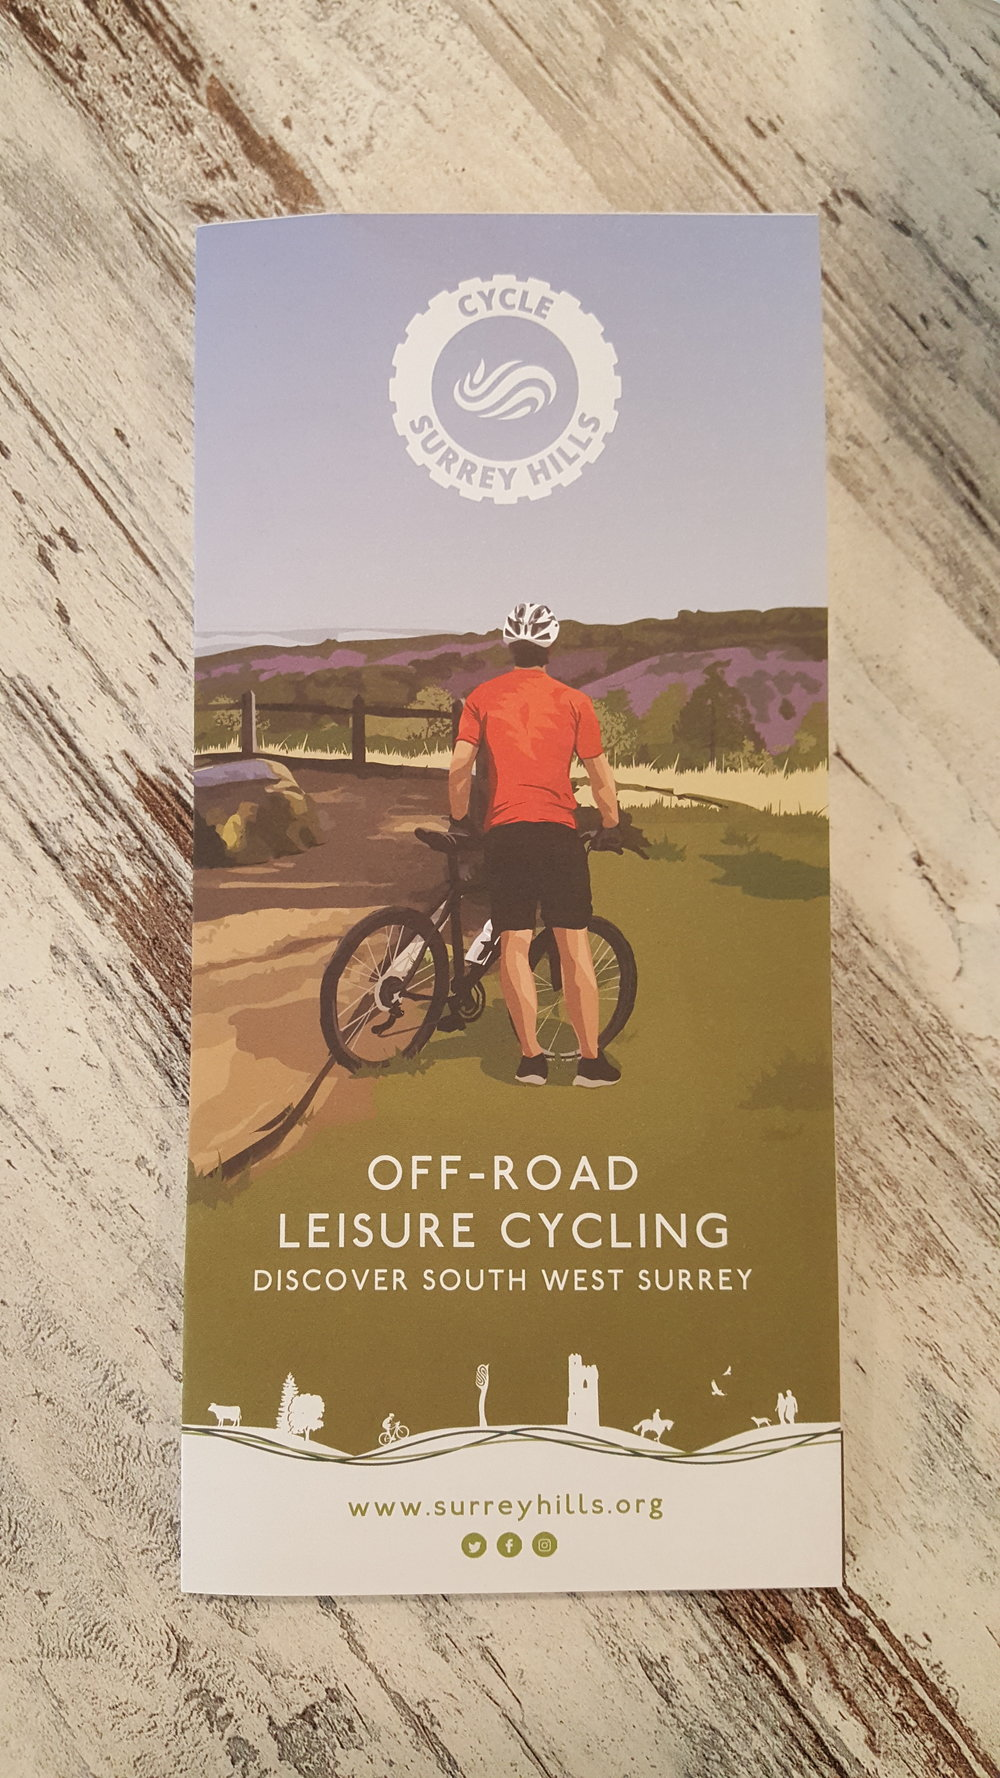 Cycle Surrey Hills pamphlet